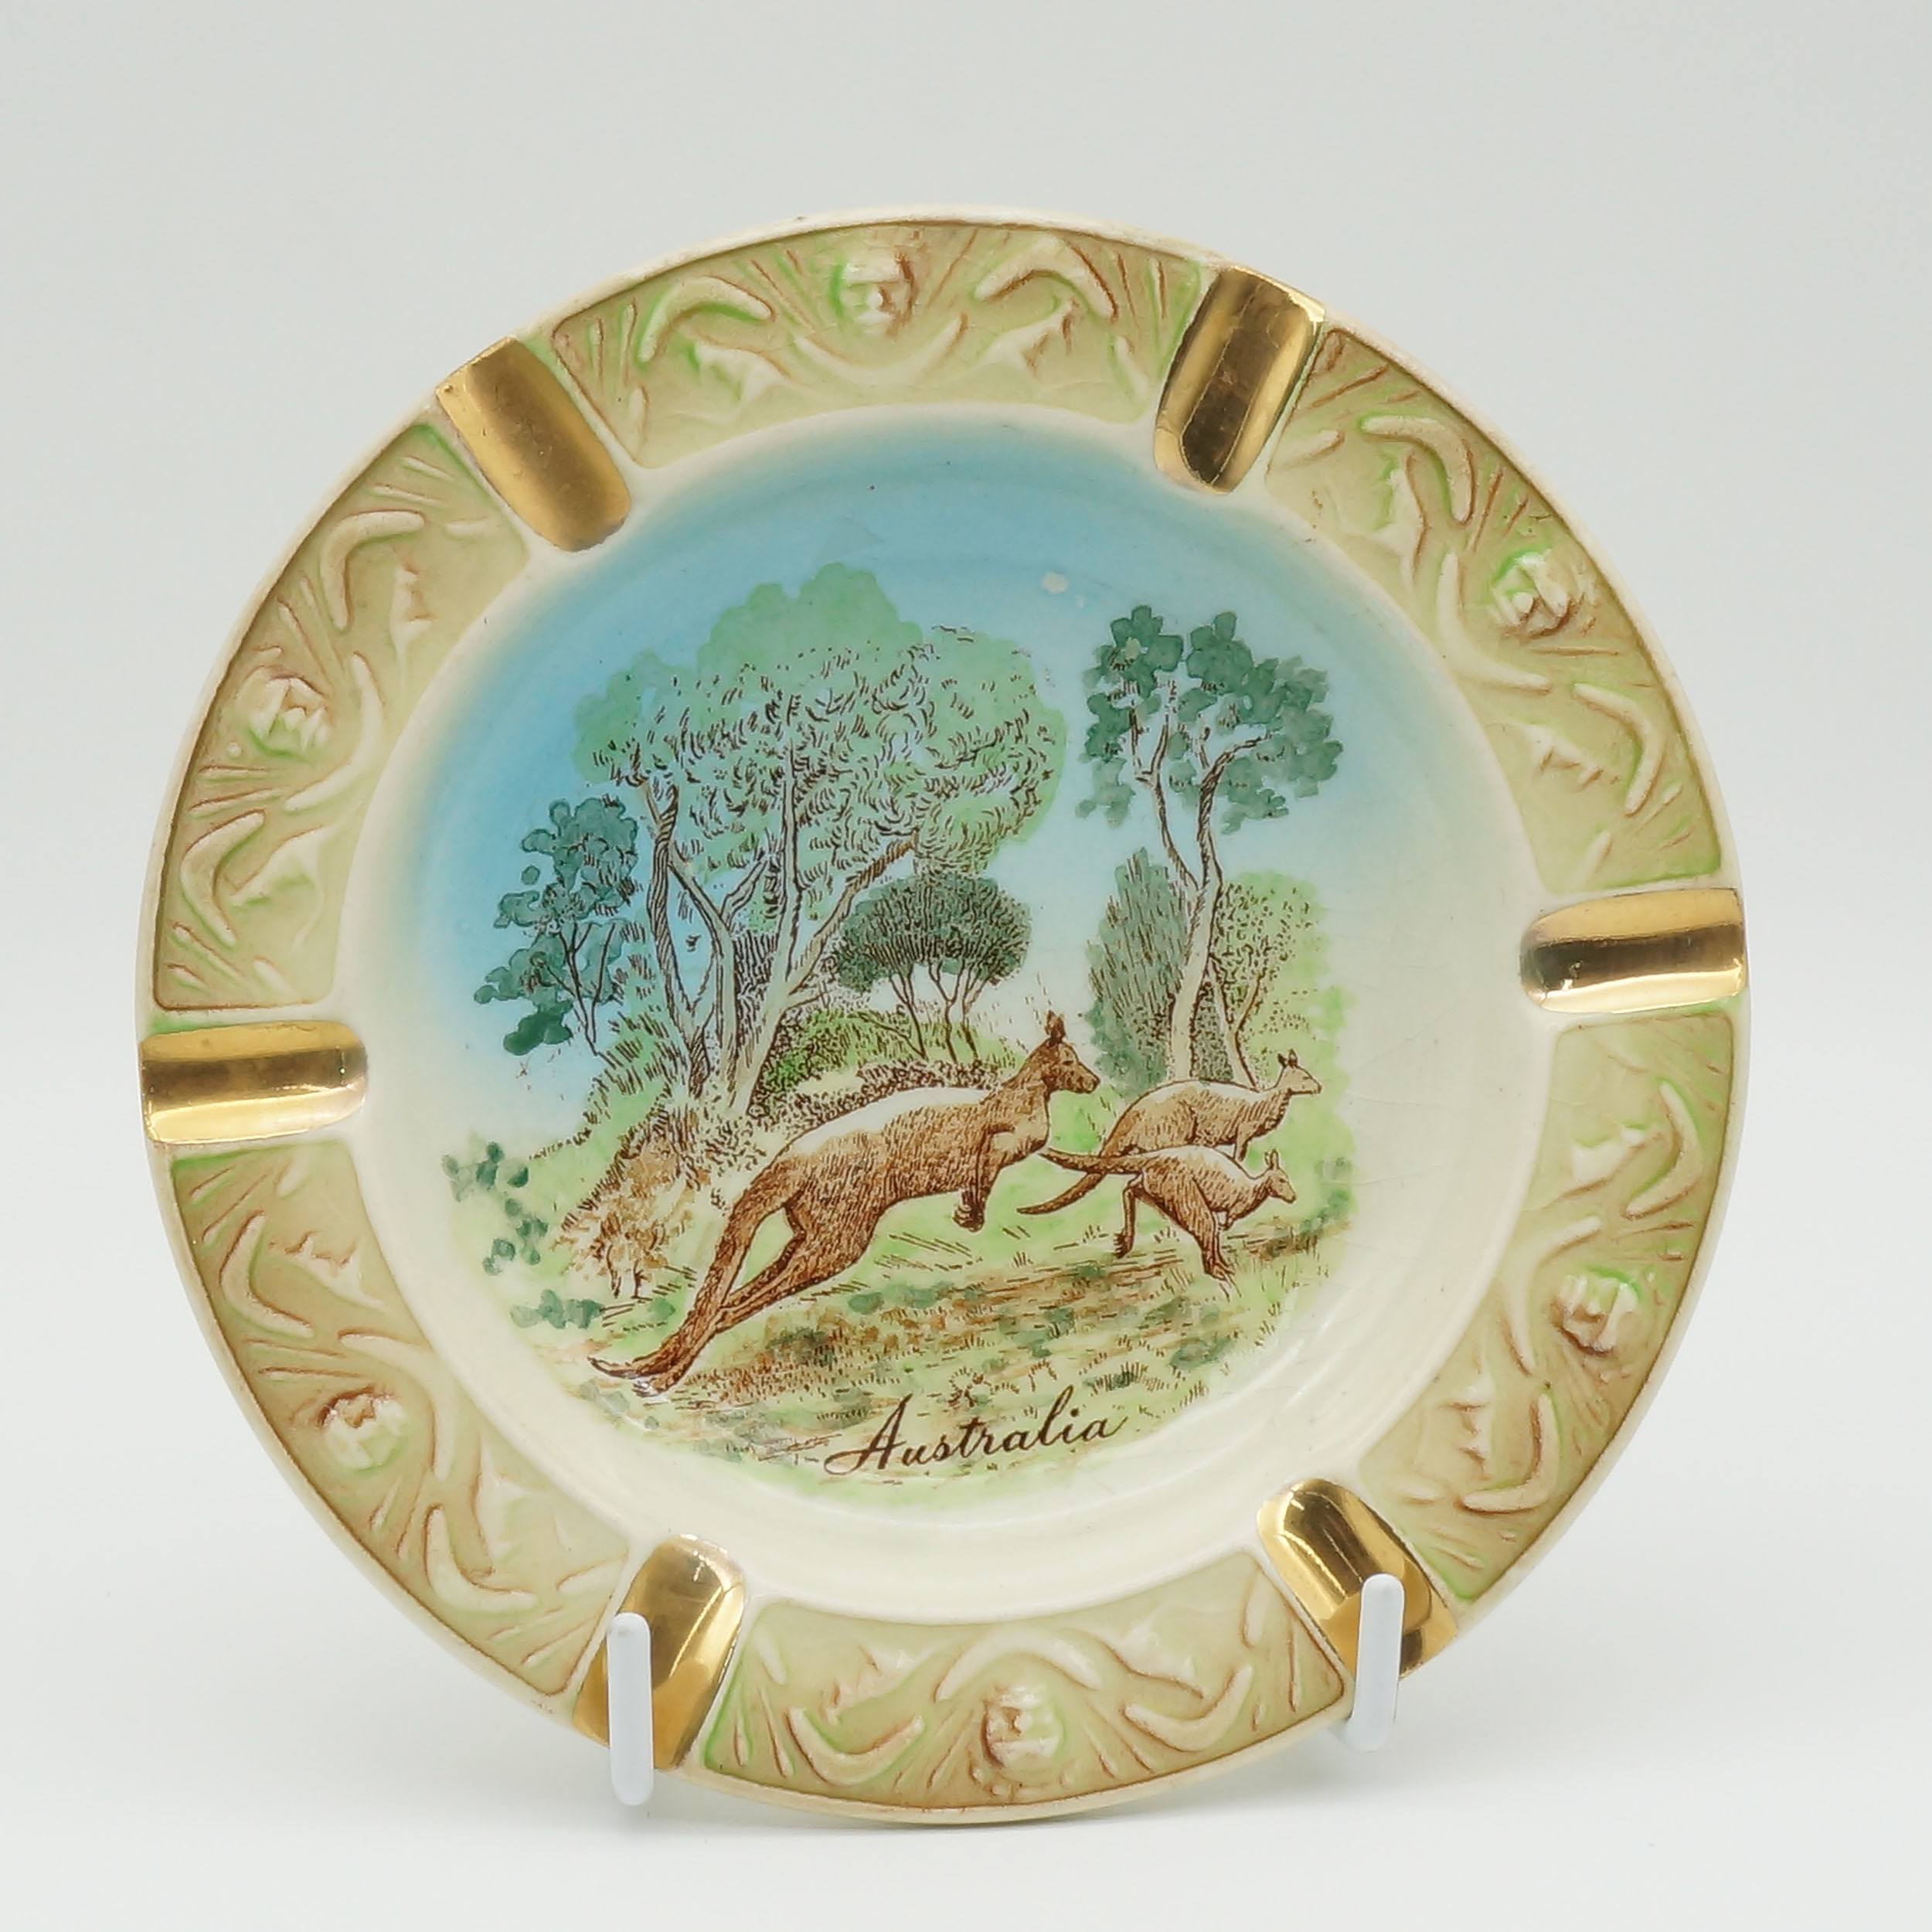 'Australian Wembley Ware Ashtray with Kangaroos'